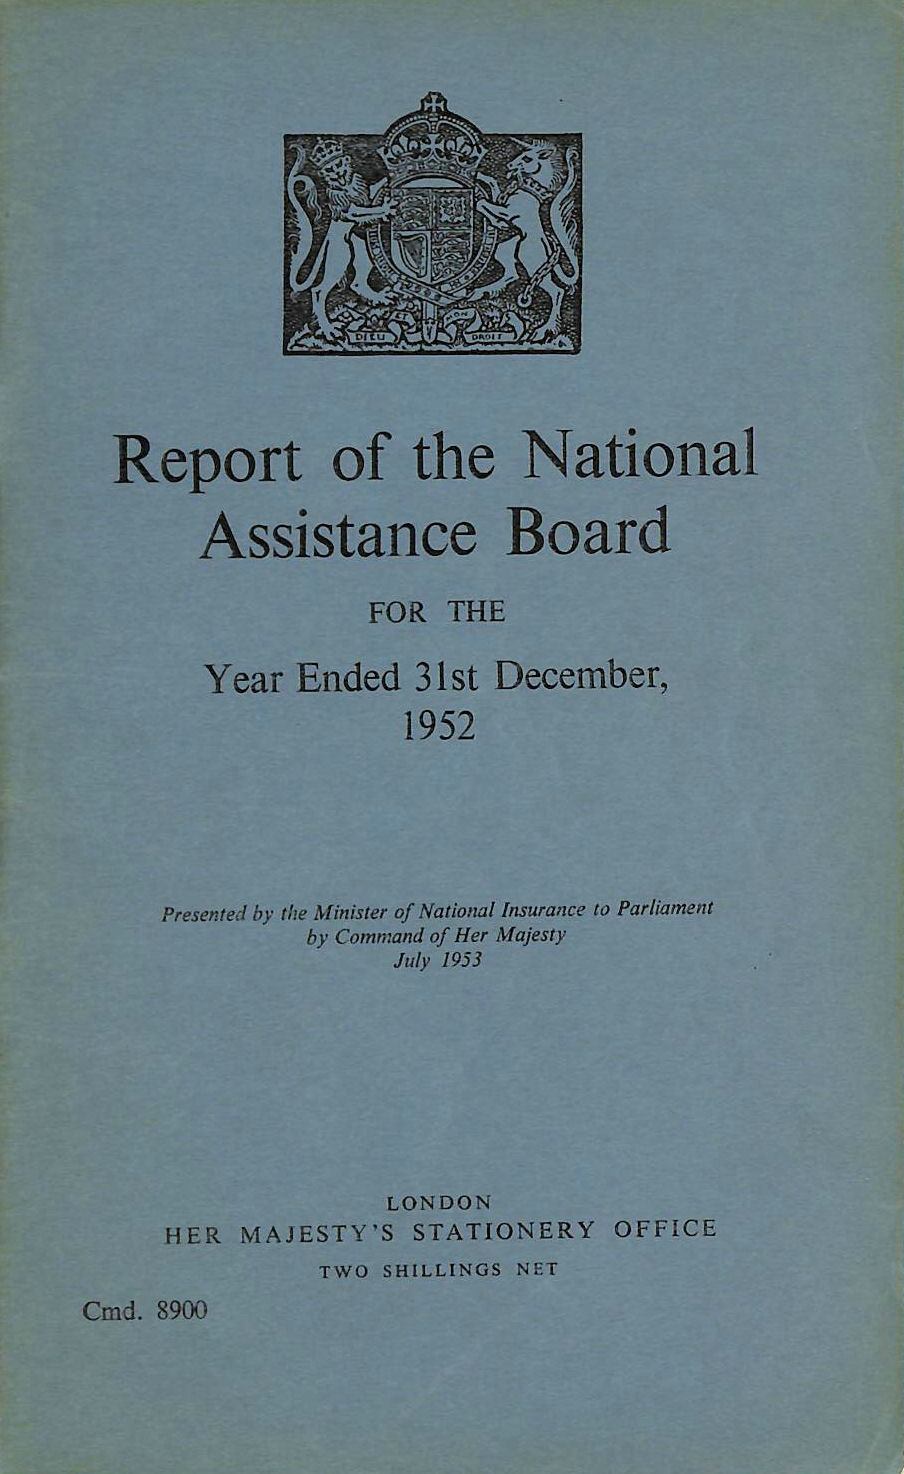 Image for Report of the National Assistance Board 1952